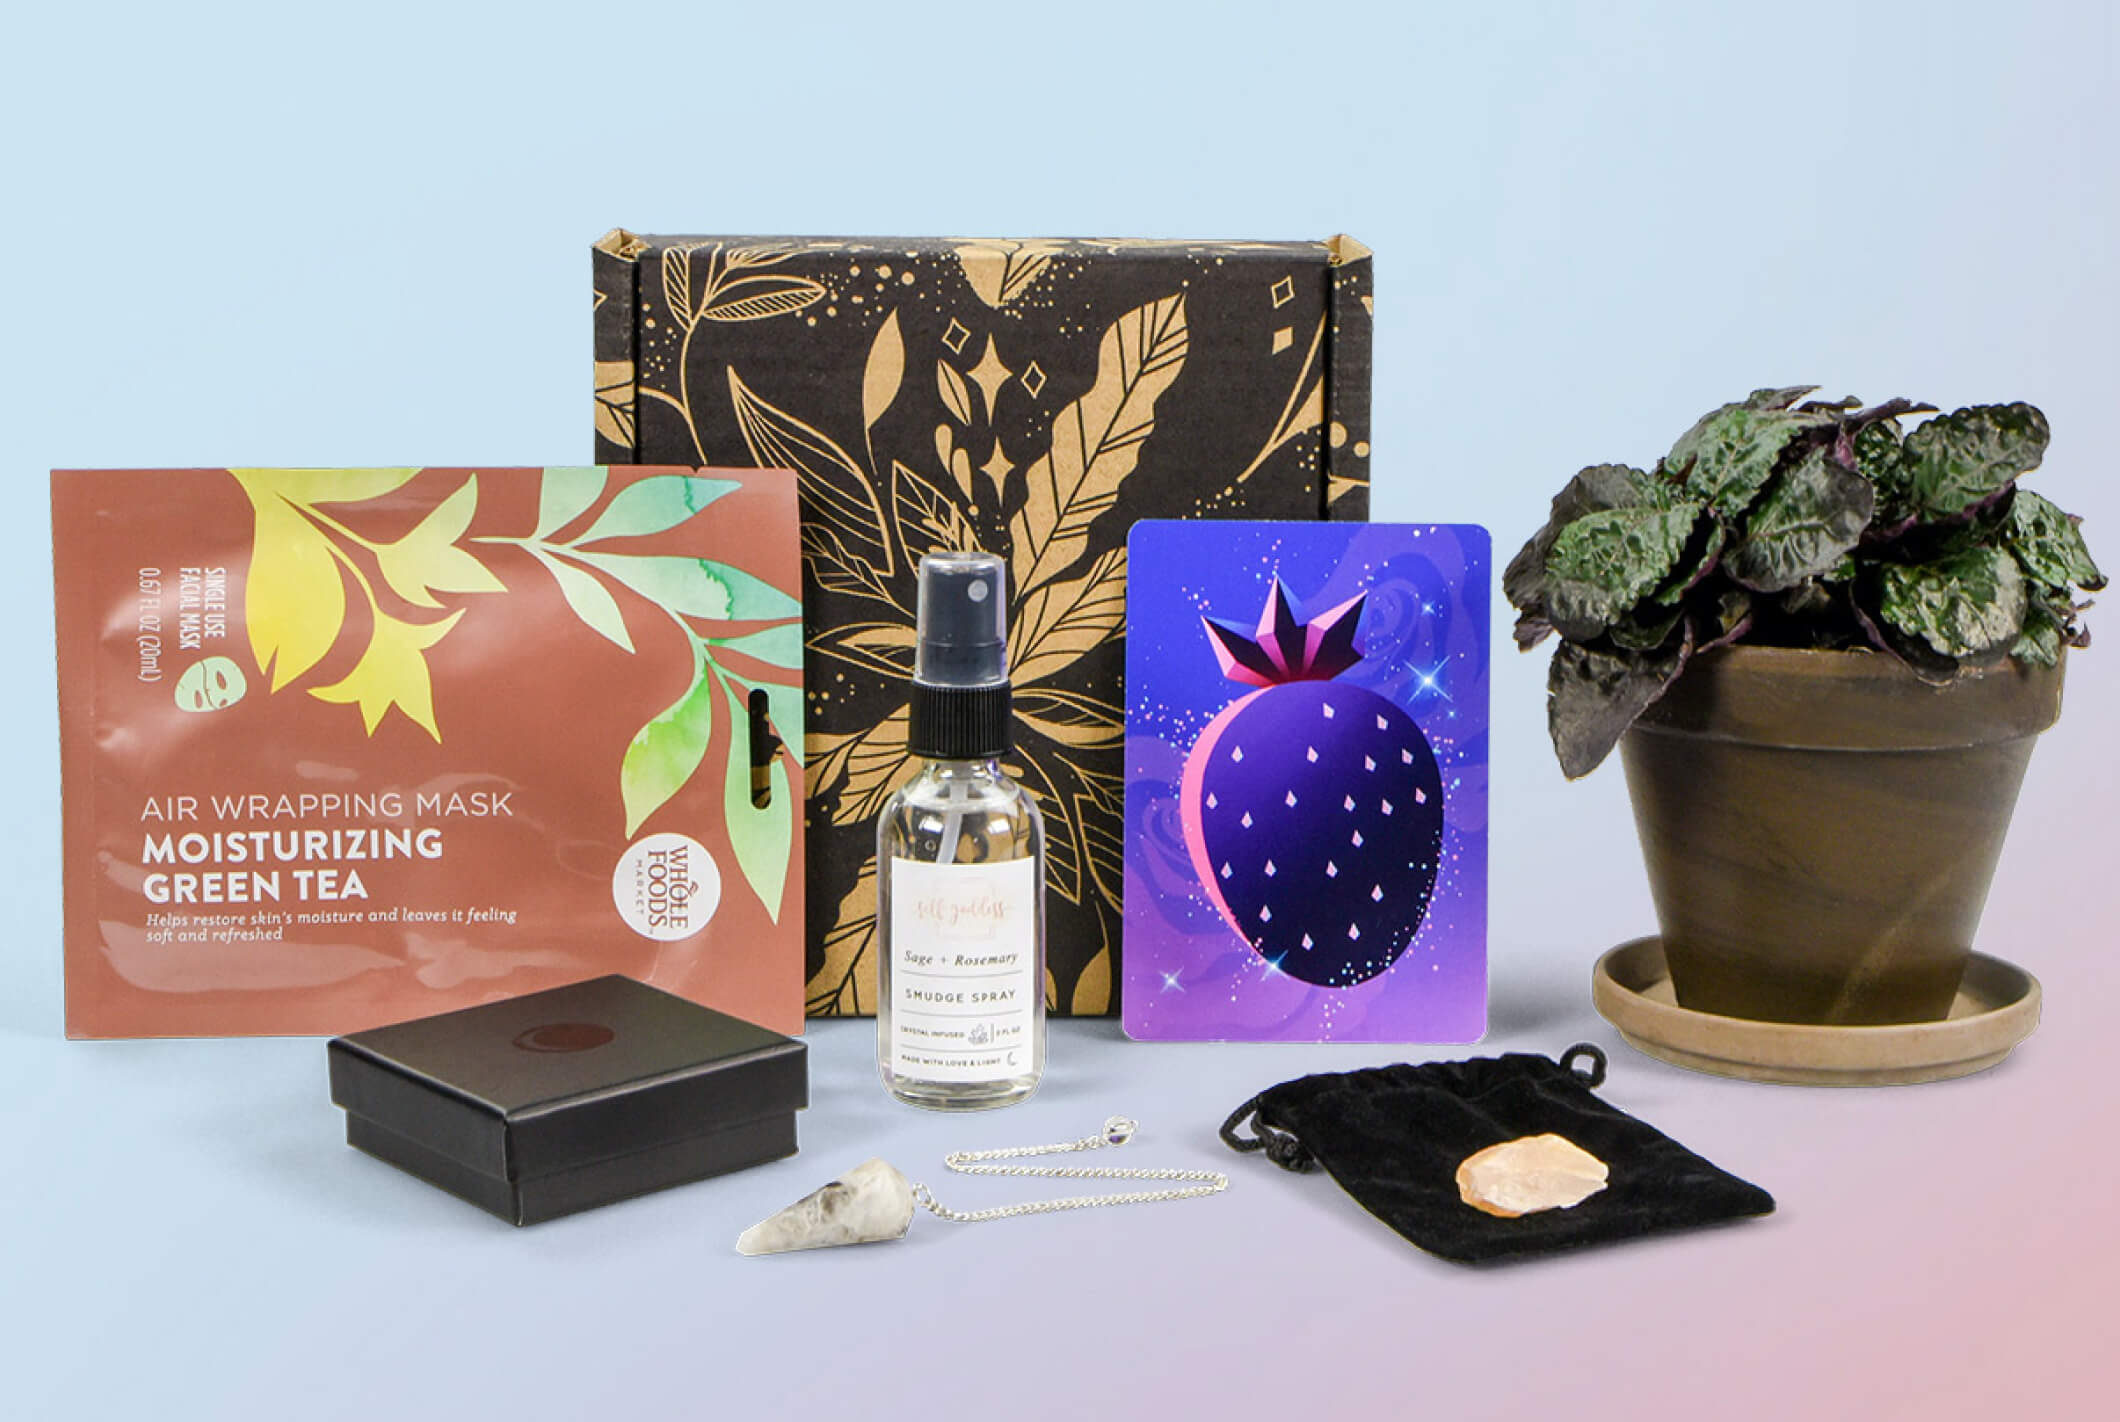 Lunarly, a subscription box focused on the lunar calendar and intention setting